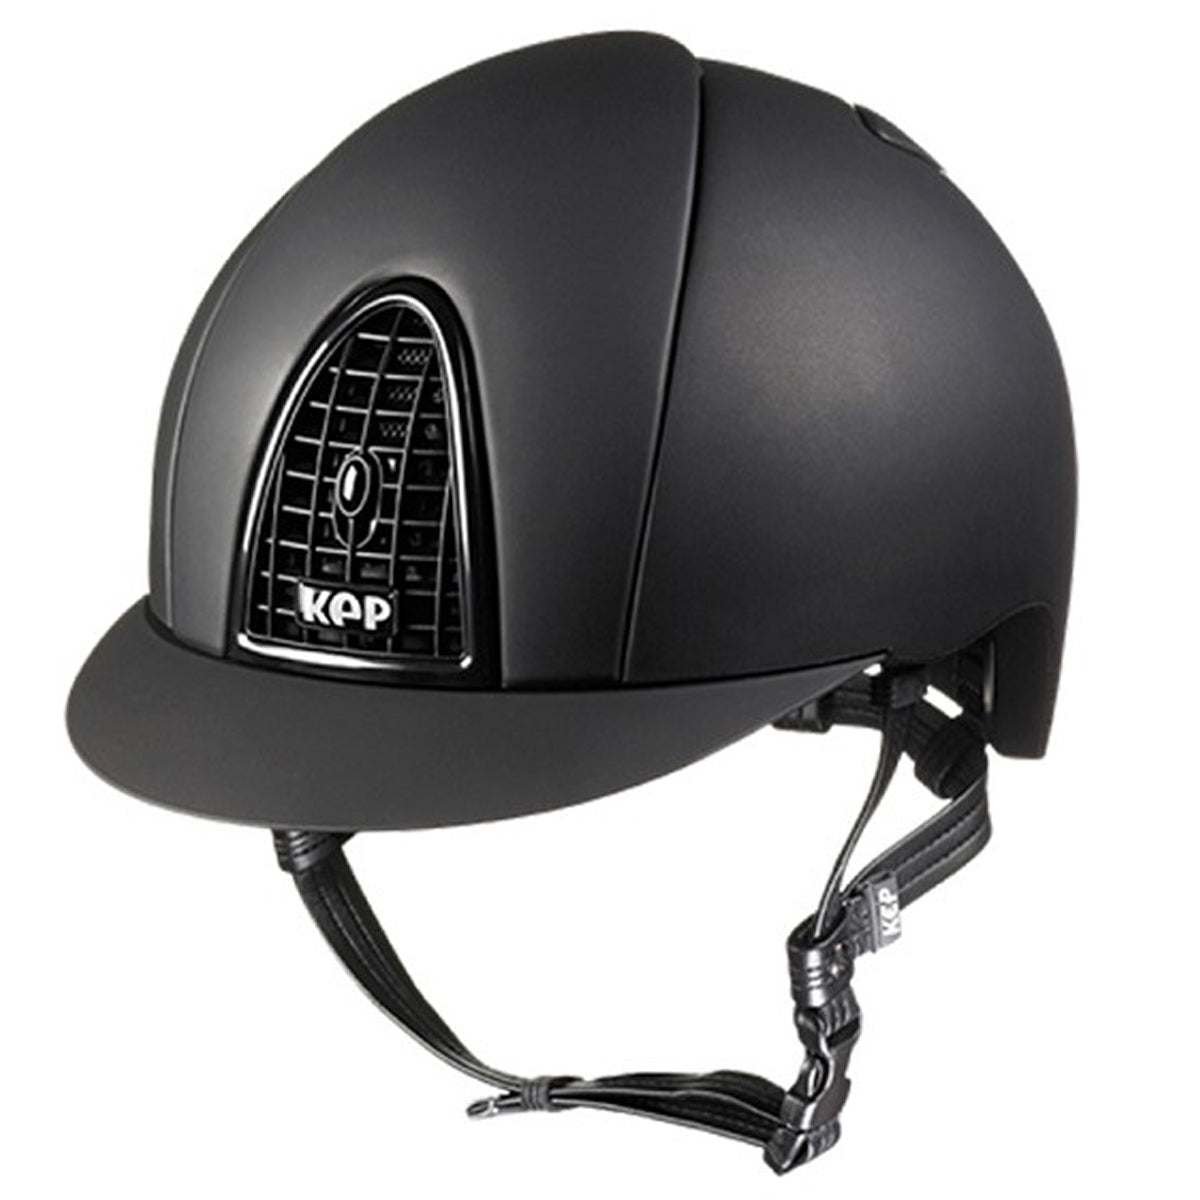 Kep Italia Cromo Matt Riding Helmet